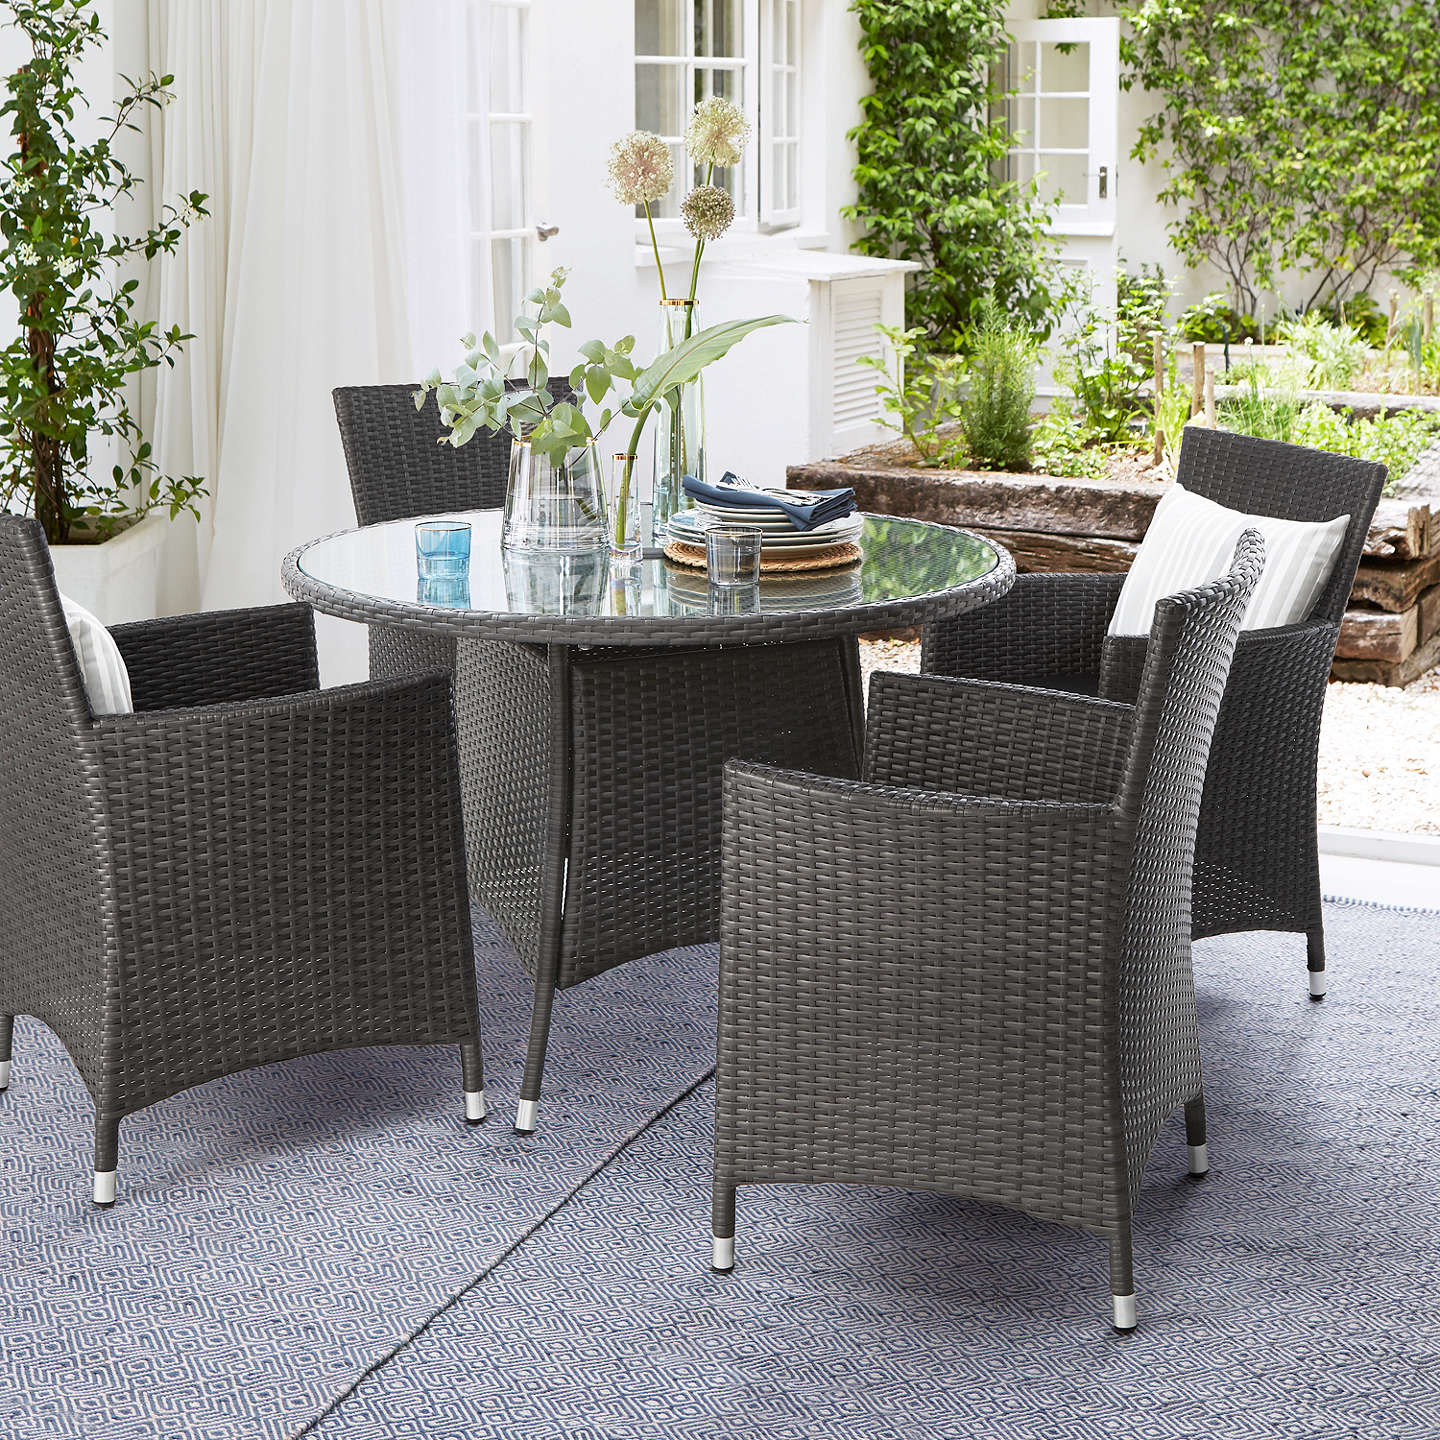 outdoor denton living table pvxejym set belham patio hayneedle fire piece dining blogbeen furniture great durable sets